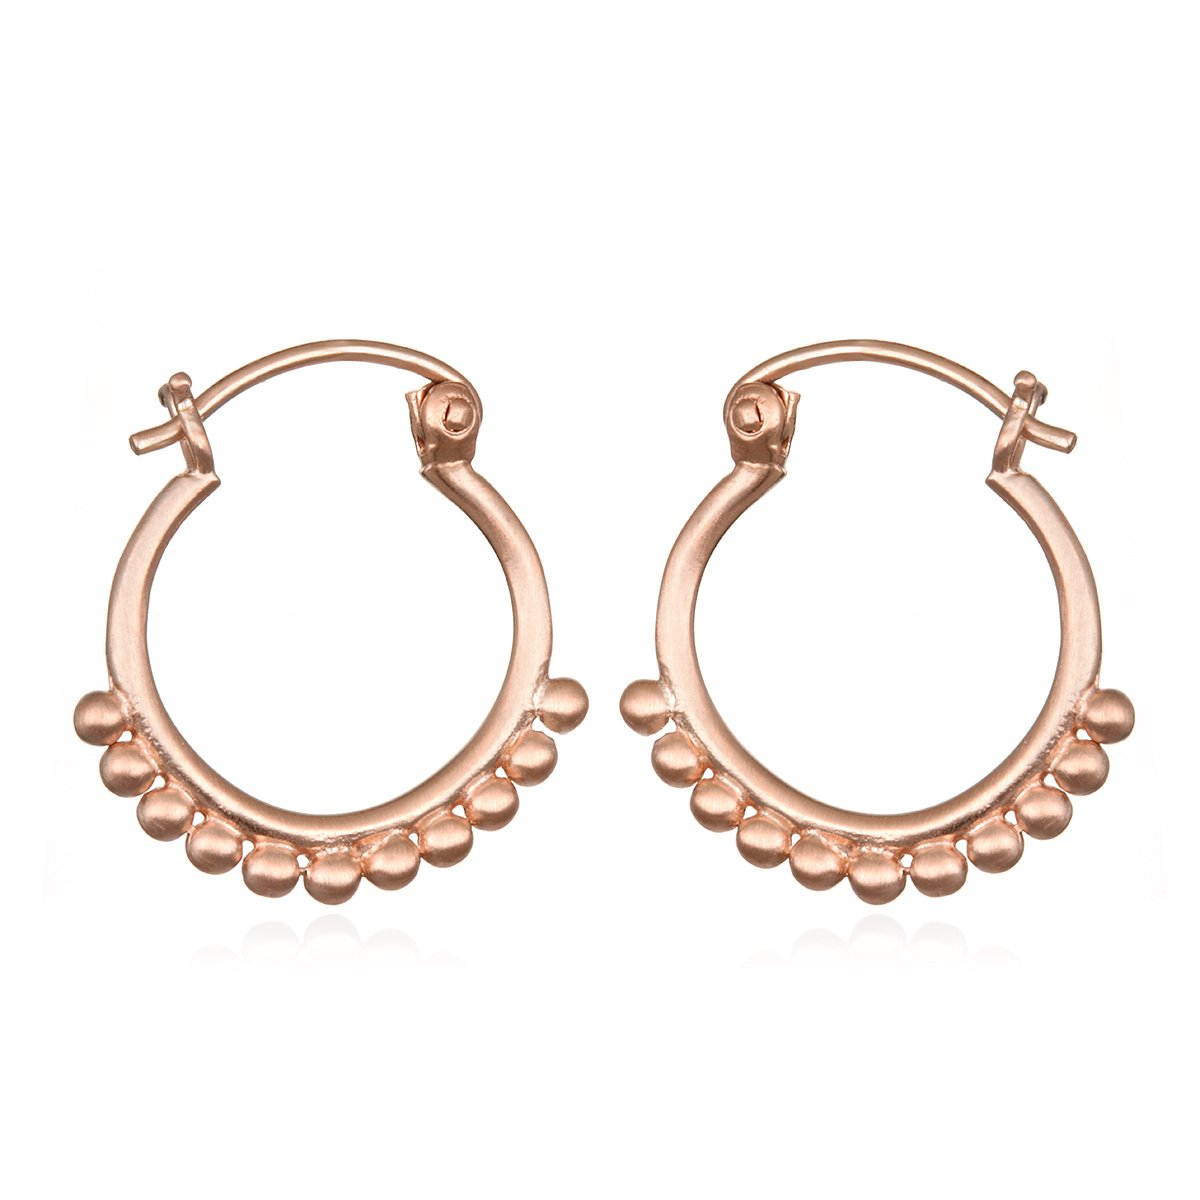 Satya Jewelry Womens Rose Gold Small Mandala Hoop Earrings, One Size ERG1